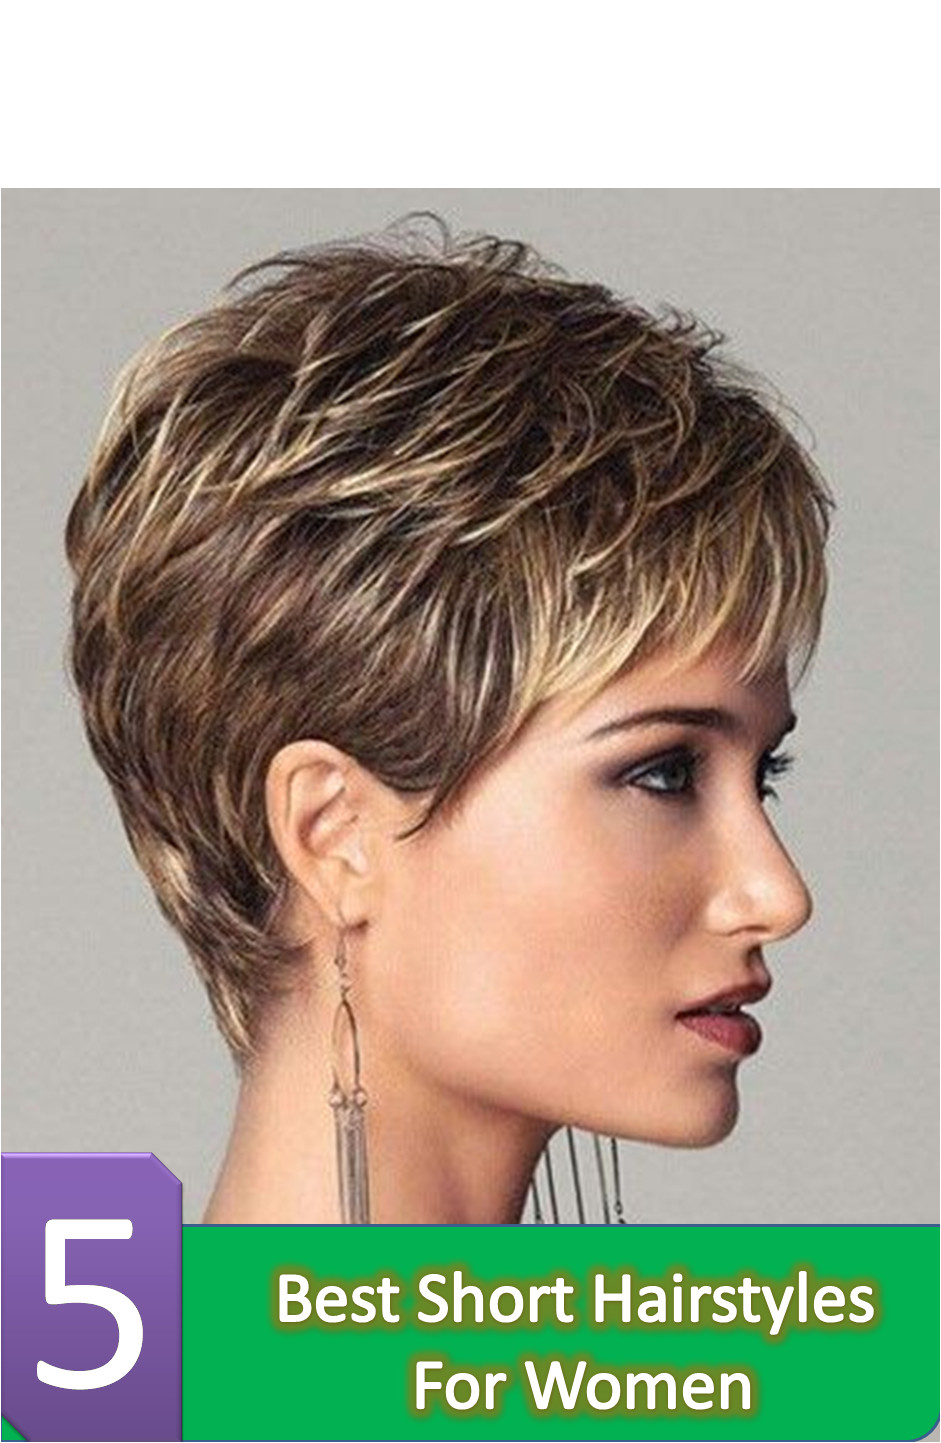 If you want to elegant look at the same time easy maintenance of your hair no doubt short hairstyles for women will be your wise choice